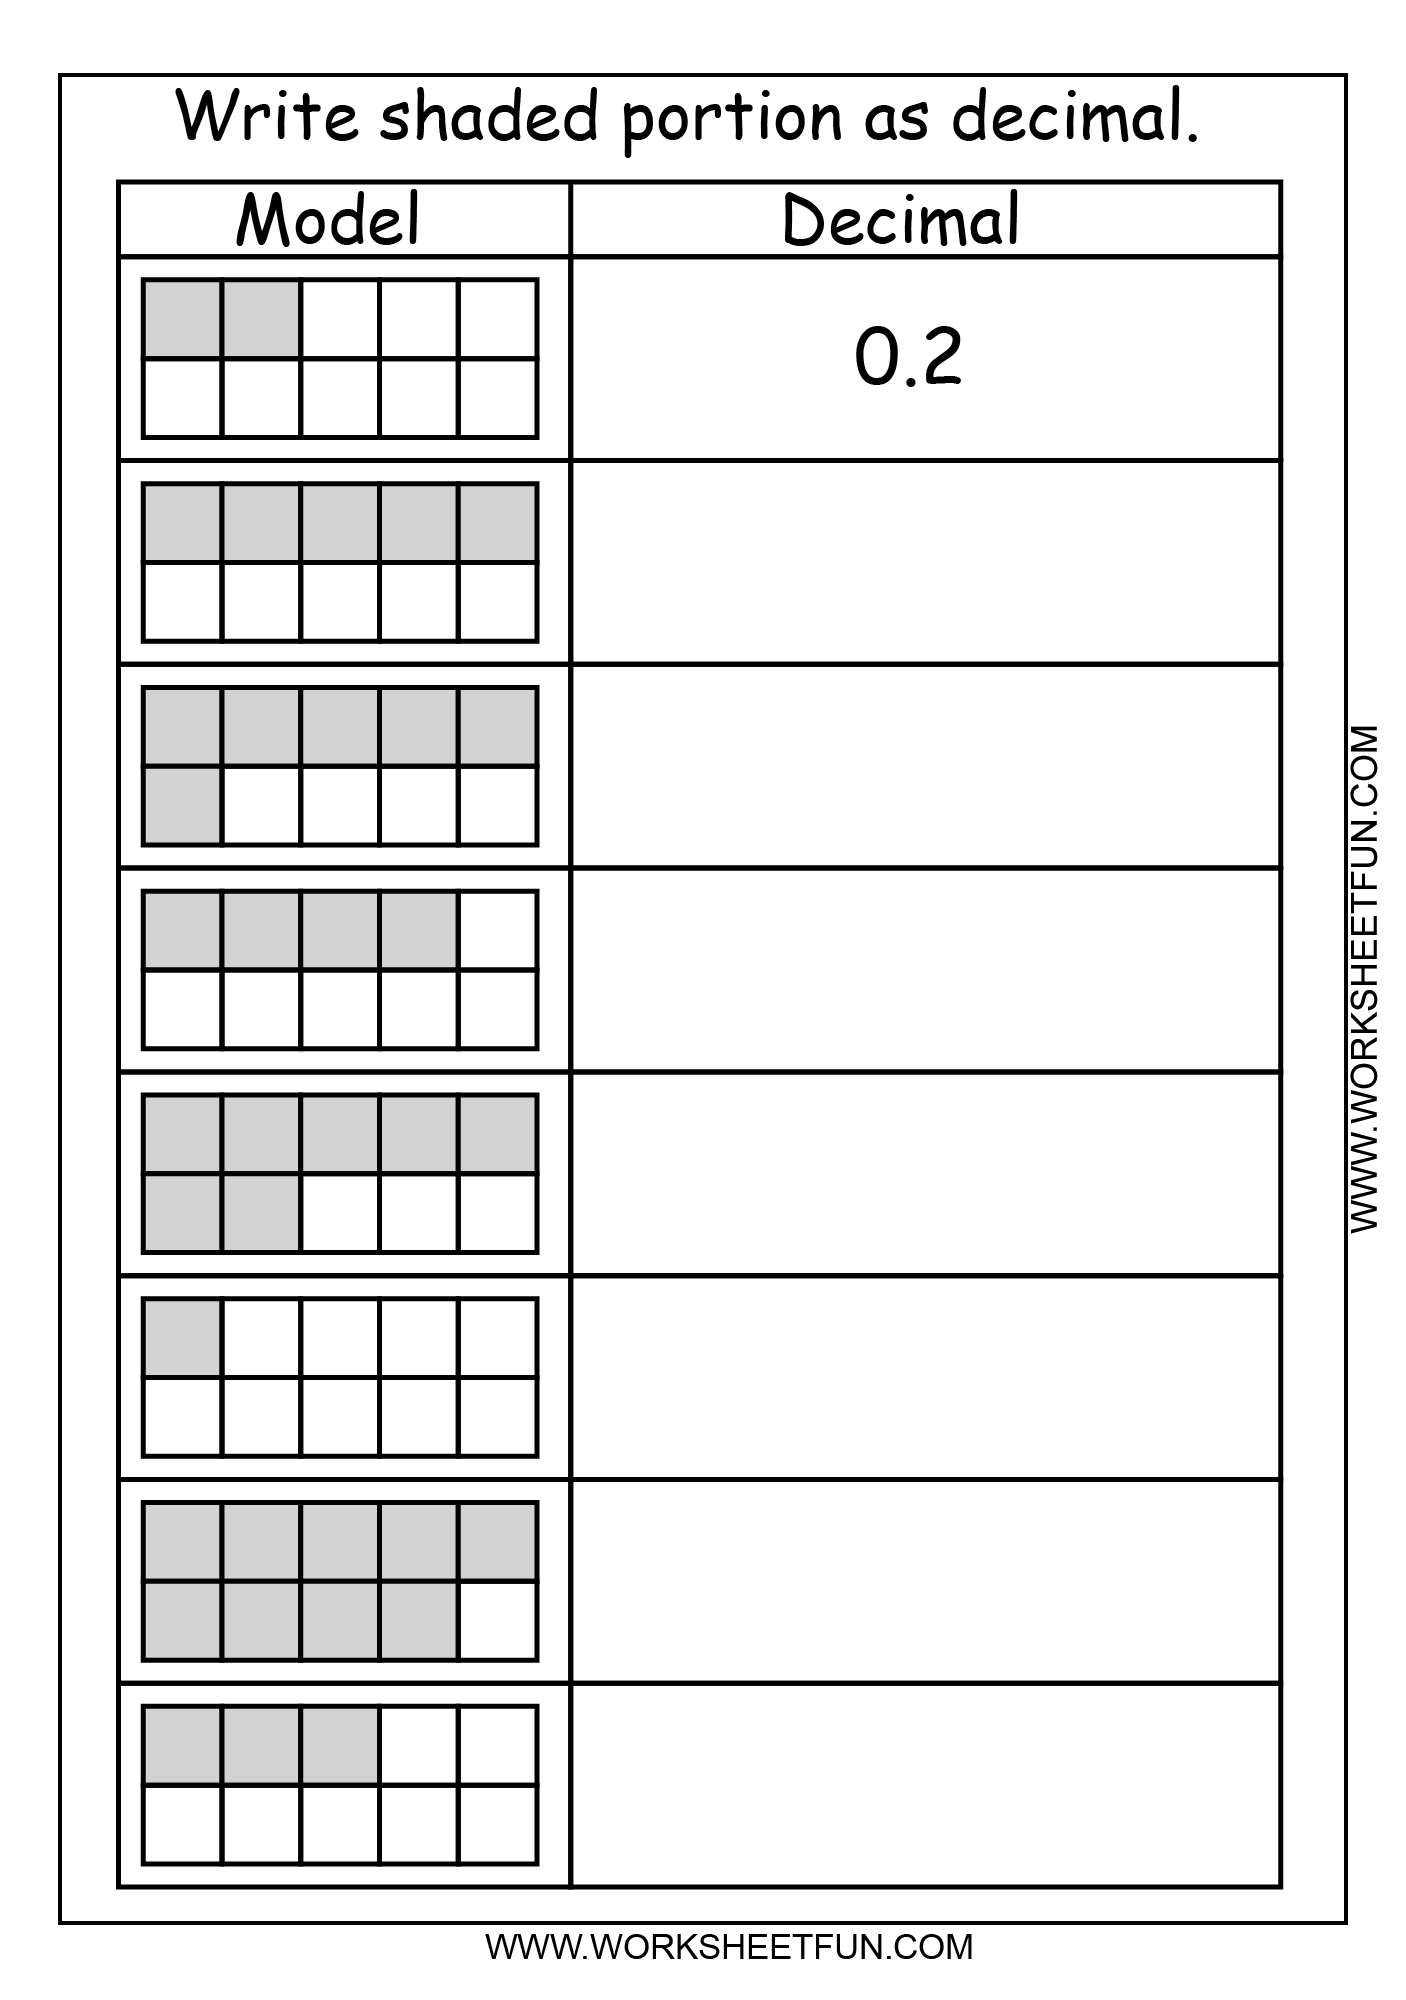 hight resolution of Add With Decimals Worksheet   Printable Worksheets and Activities for  Teachers